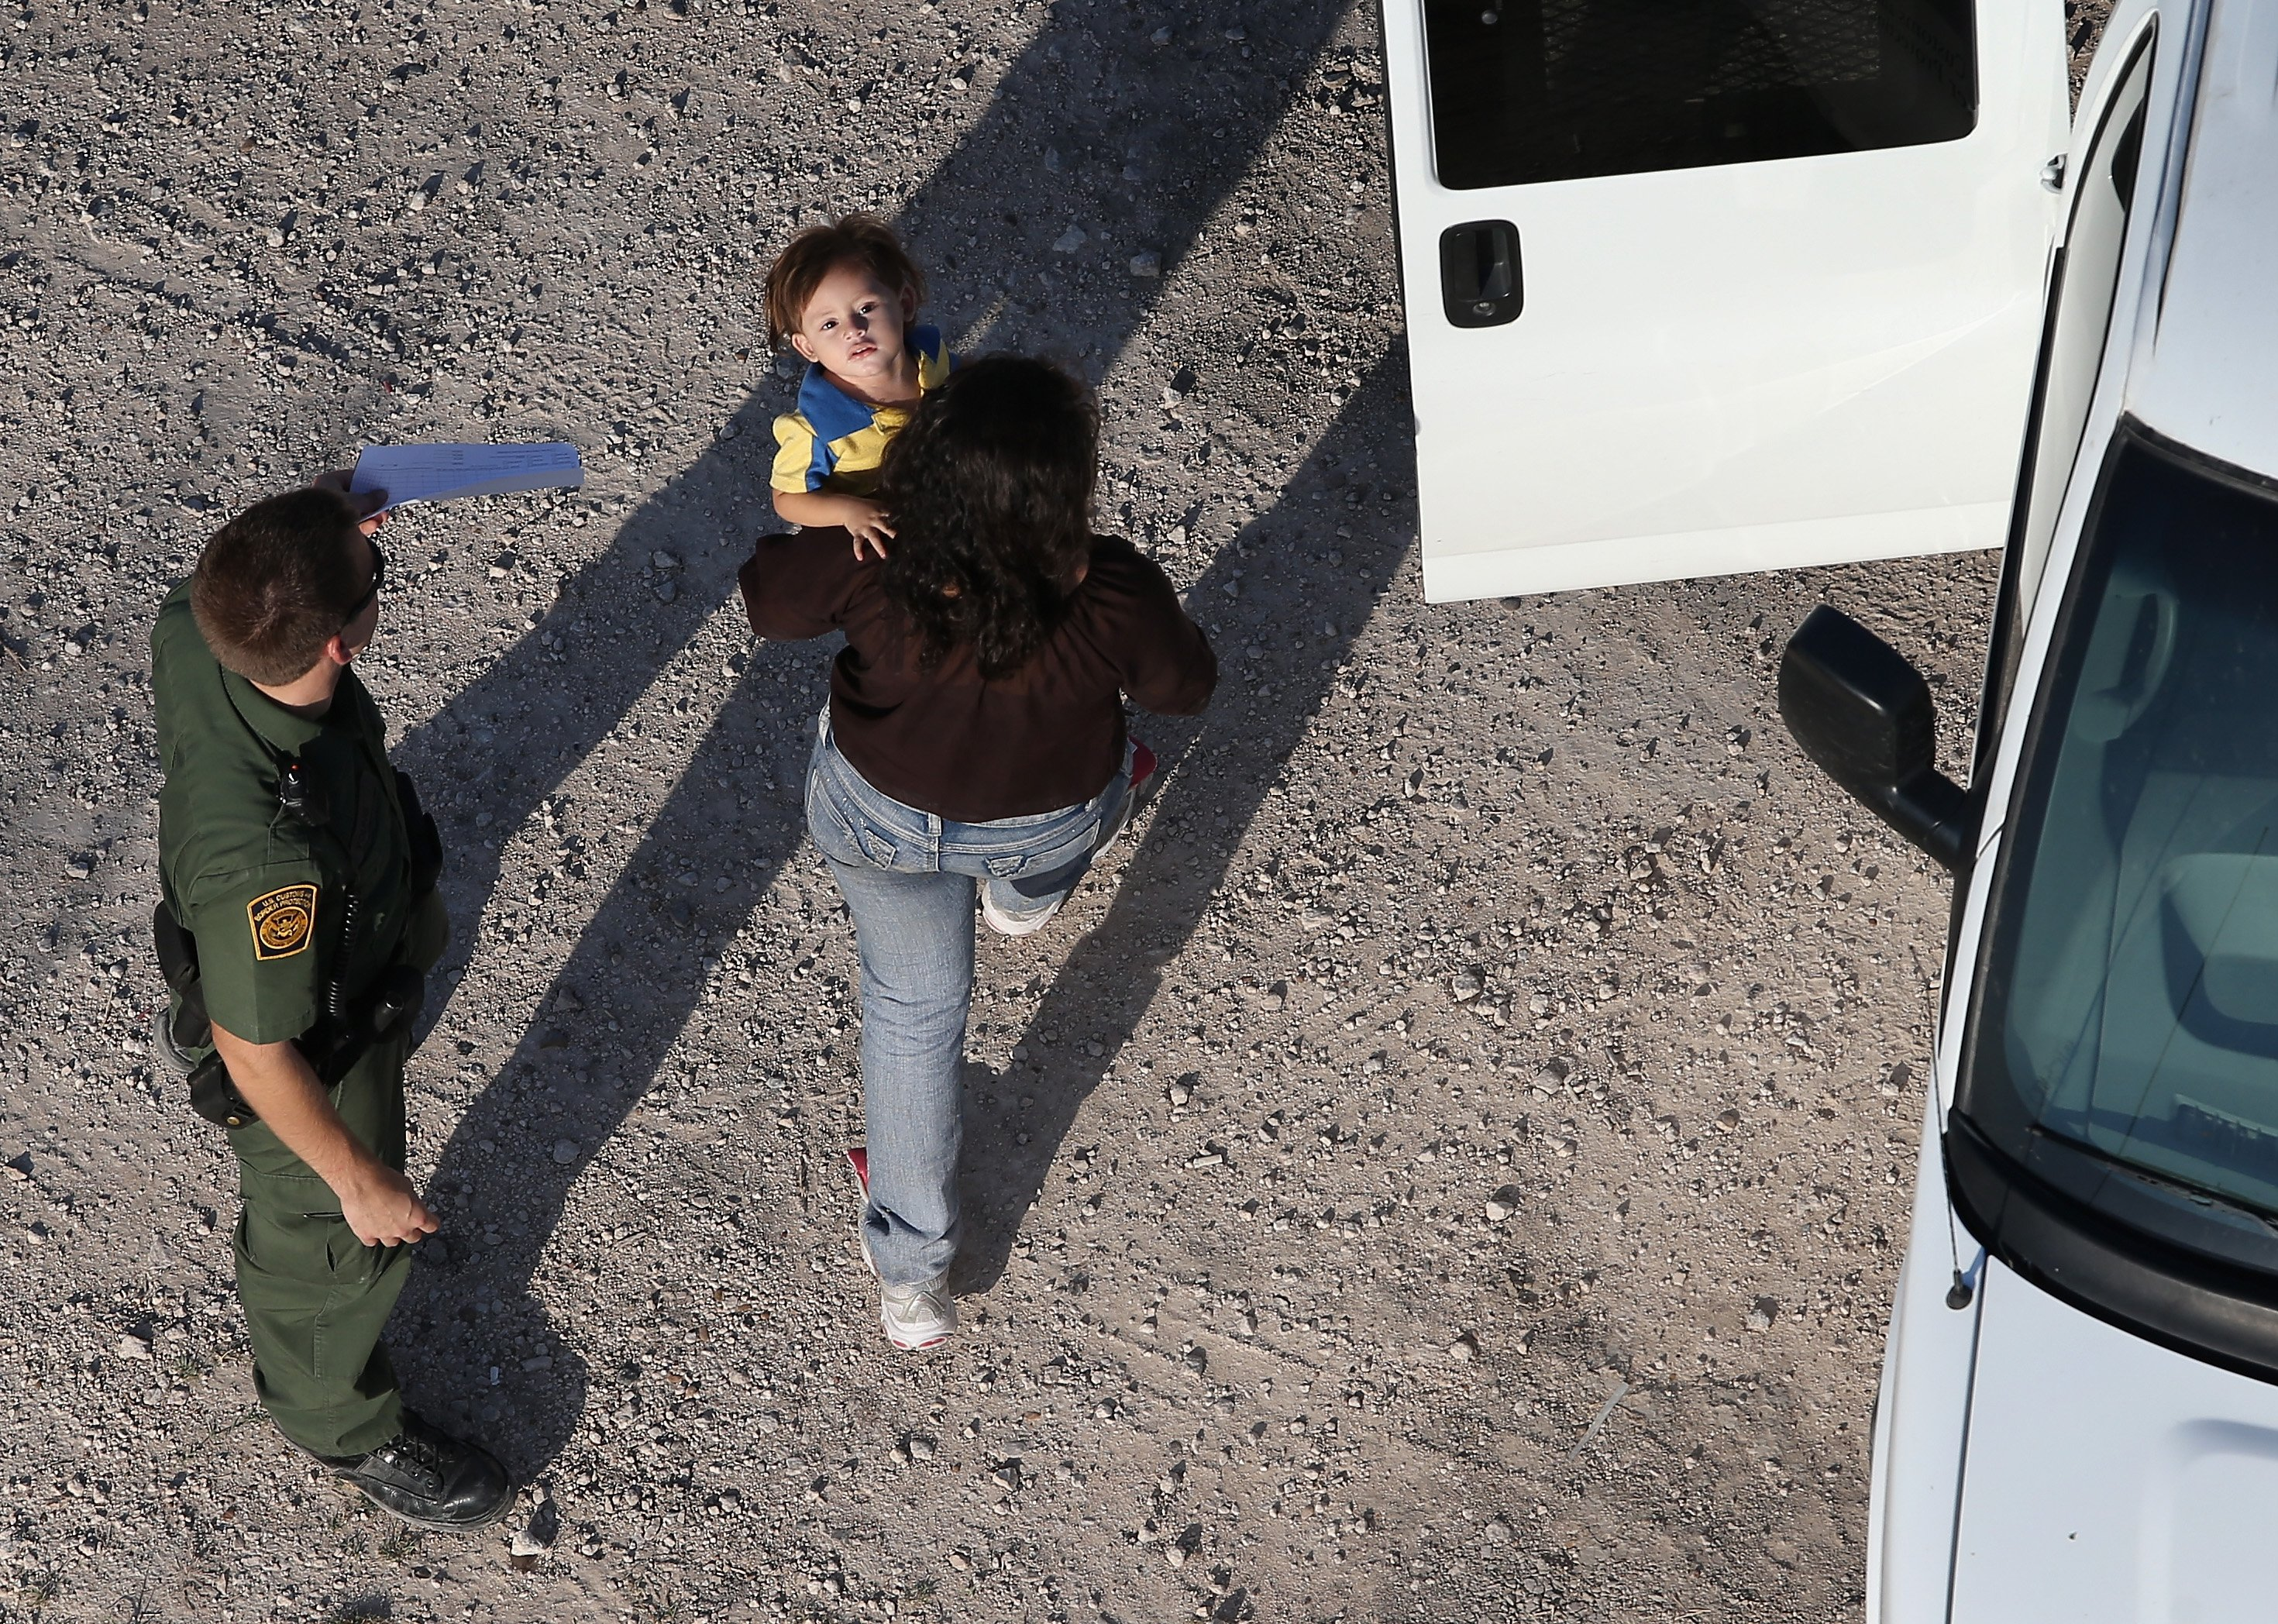 Border Patrol agents take undocumented immigrant families into custody in McAllen, Texas on July 21, 2014.